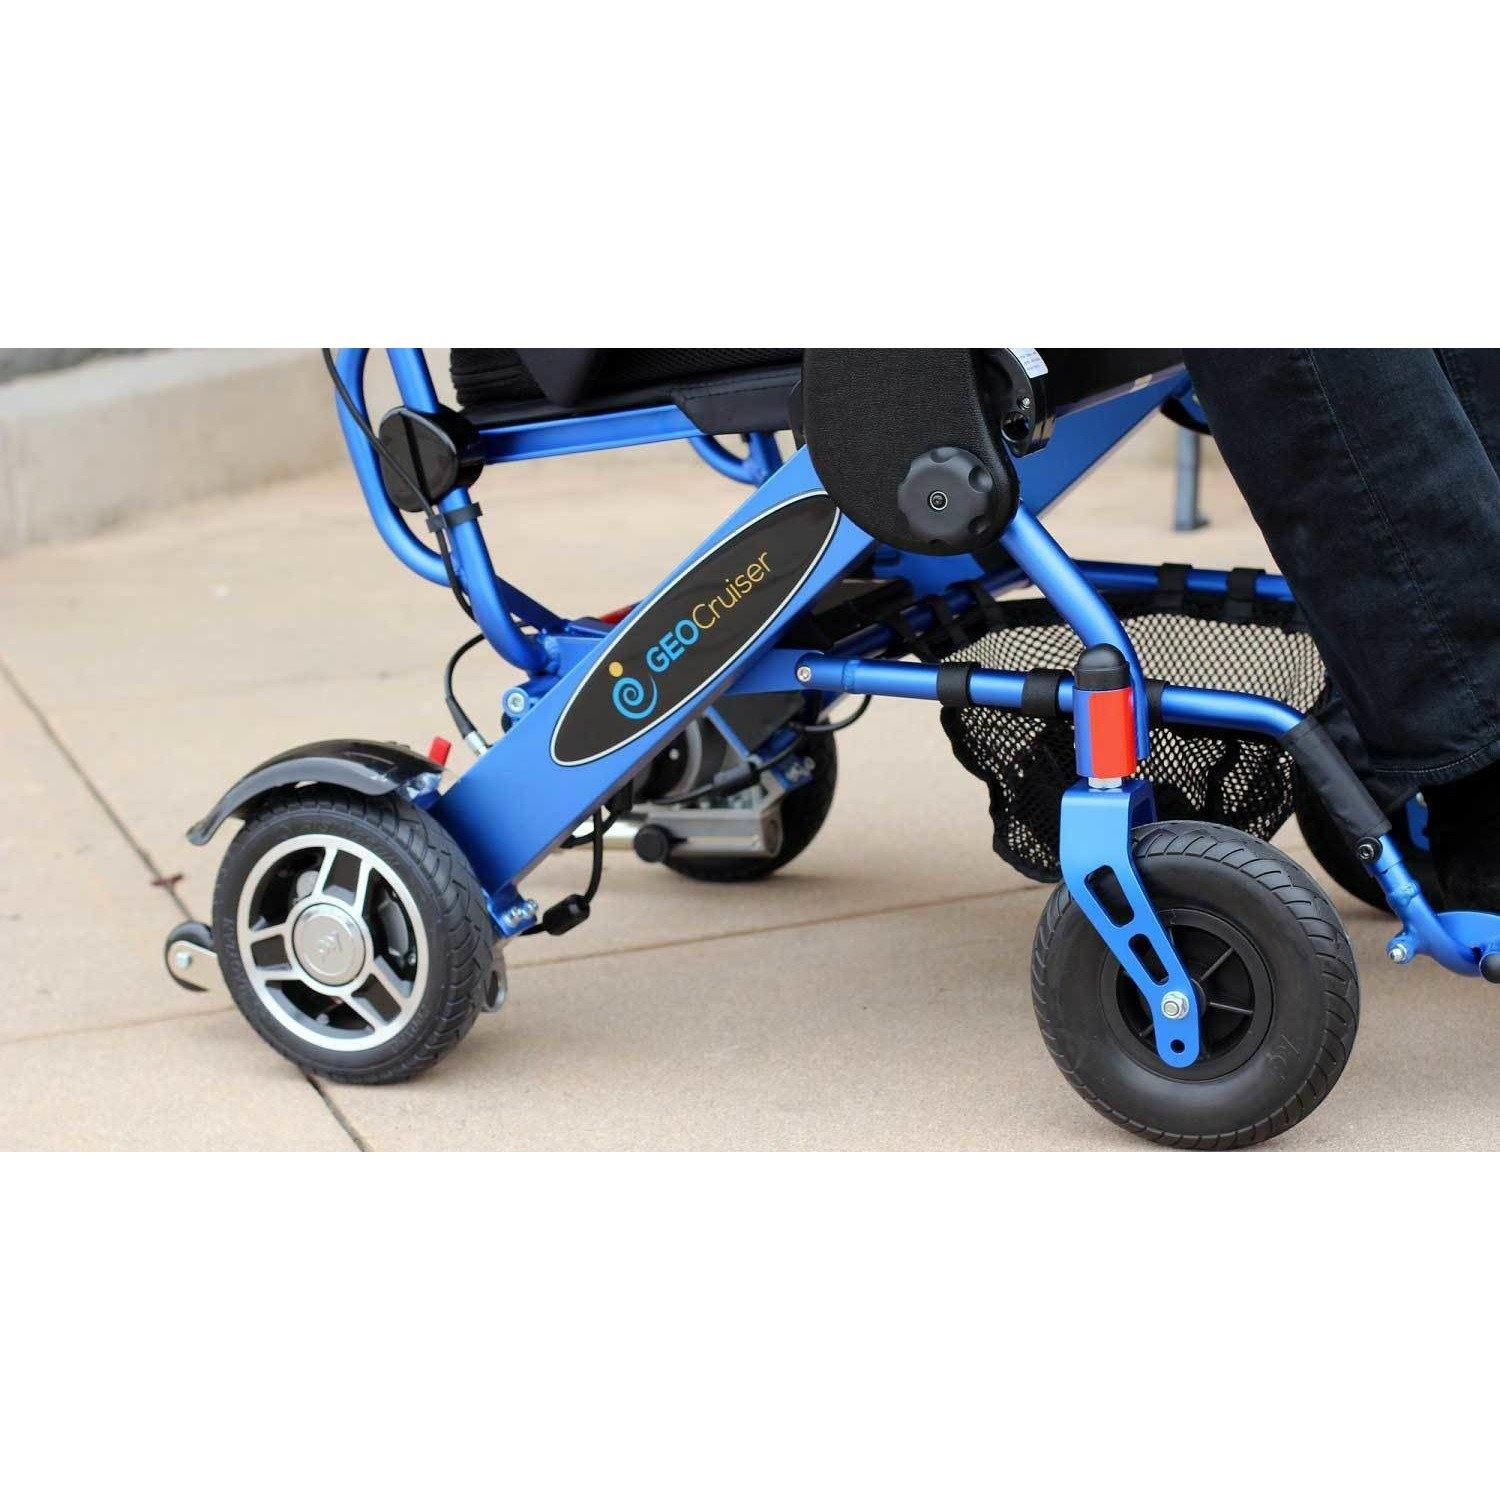 Geocruiser (Pathway Mobility): Geo Cruiser DX Lightweight Foldable Power Chair (Blue) - GC-216B-01 - Underseat Basket View